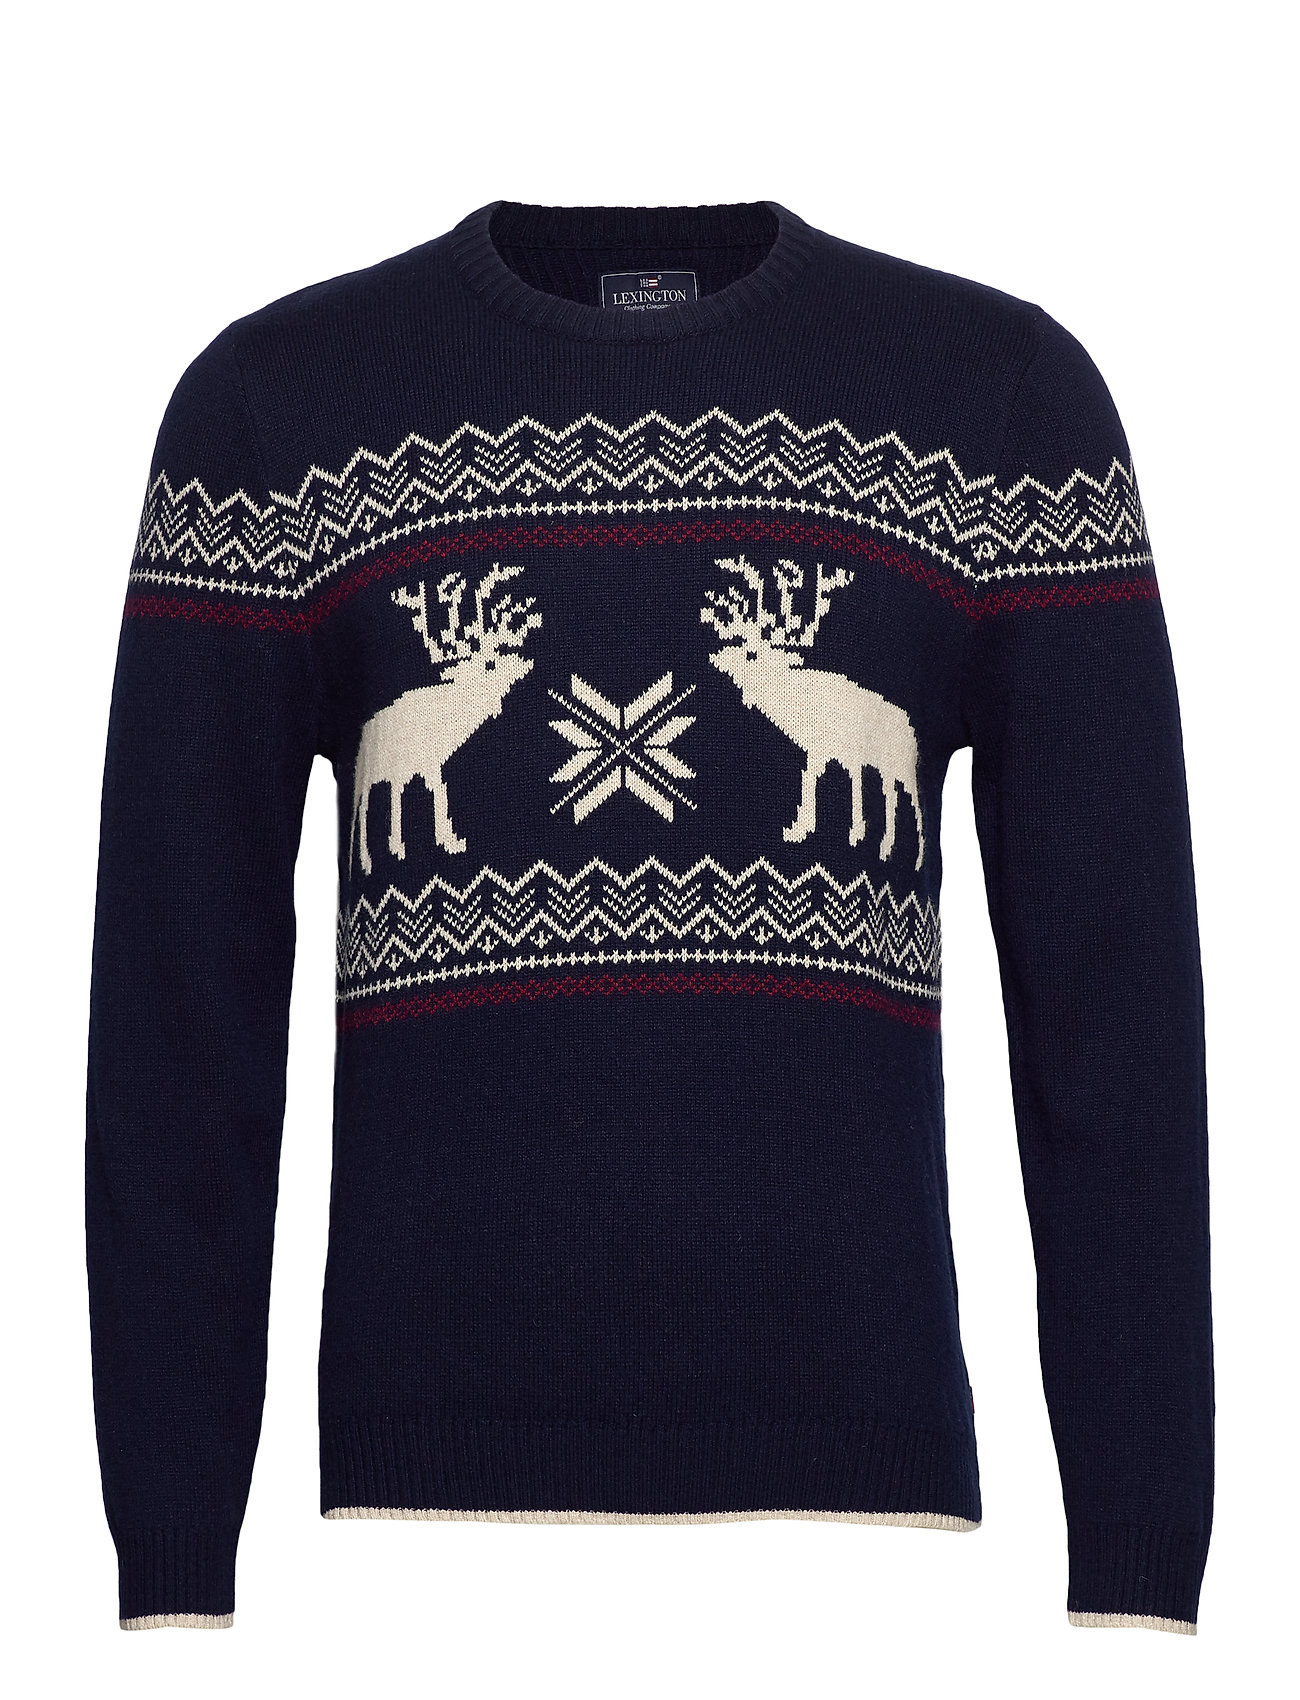 Lexington Clothing Jim Holiday Sweater - DARK BLUE